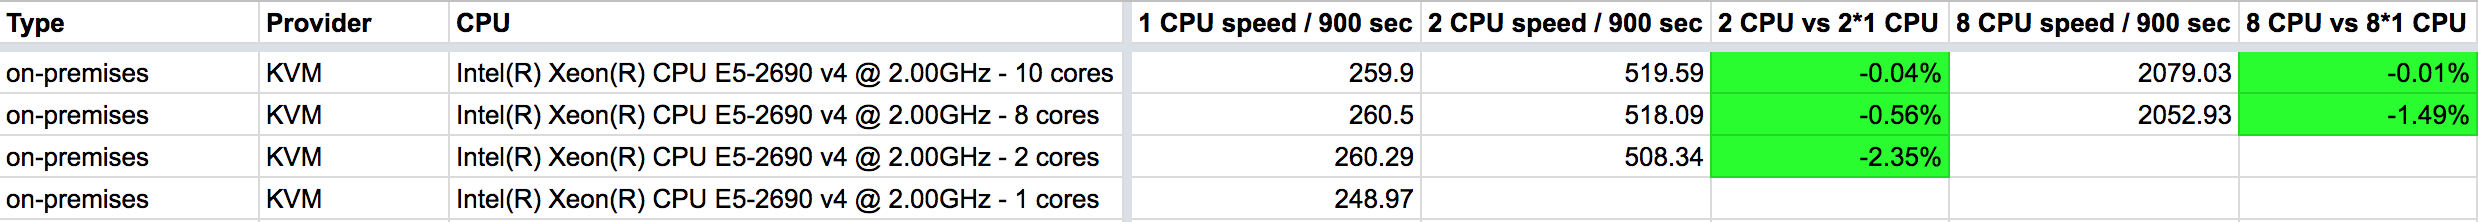 AWS vs GCP vs on-premises CPU performance comparison